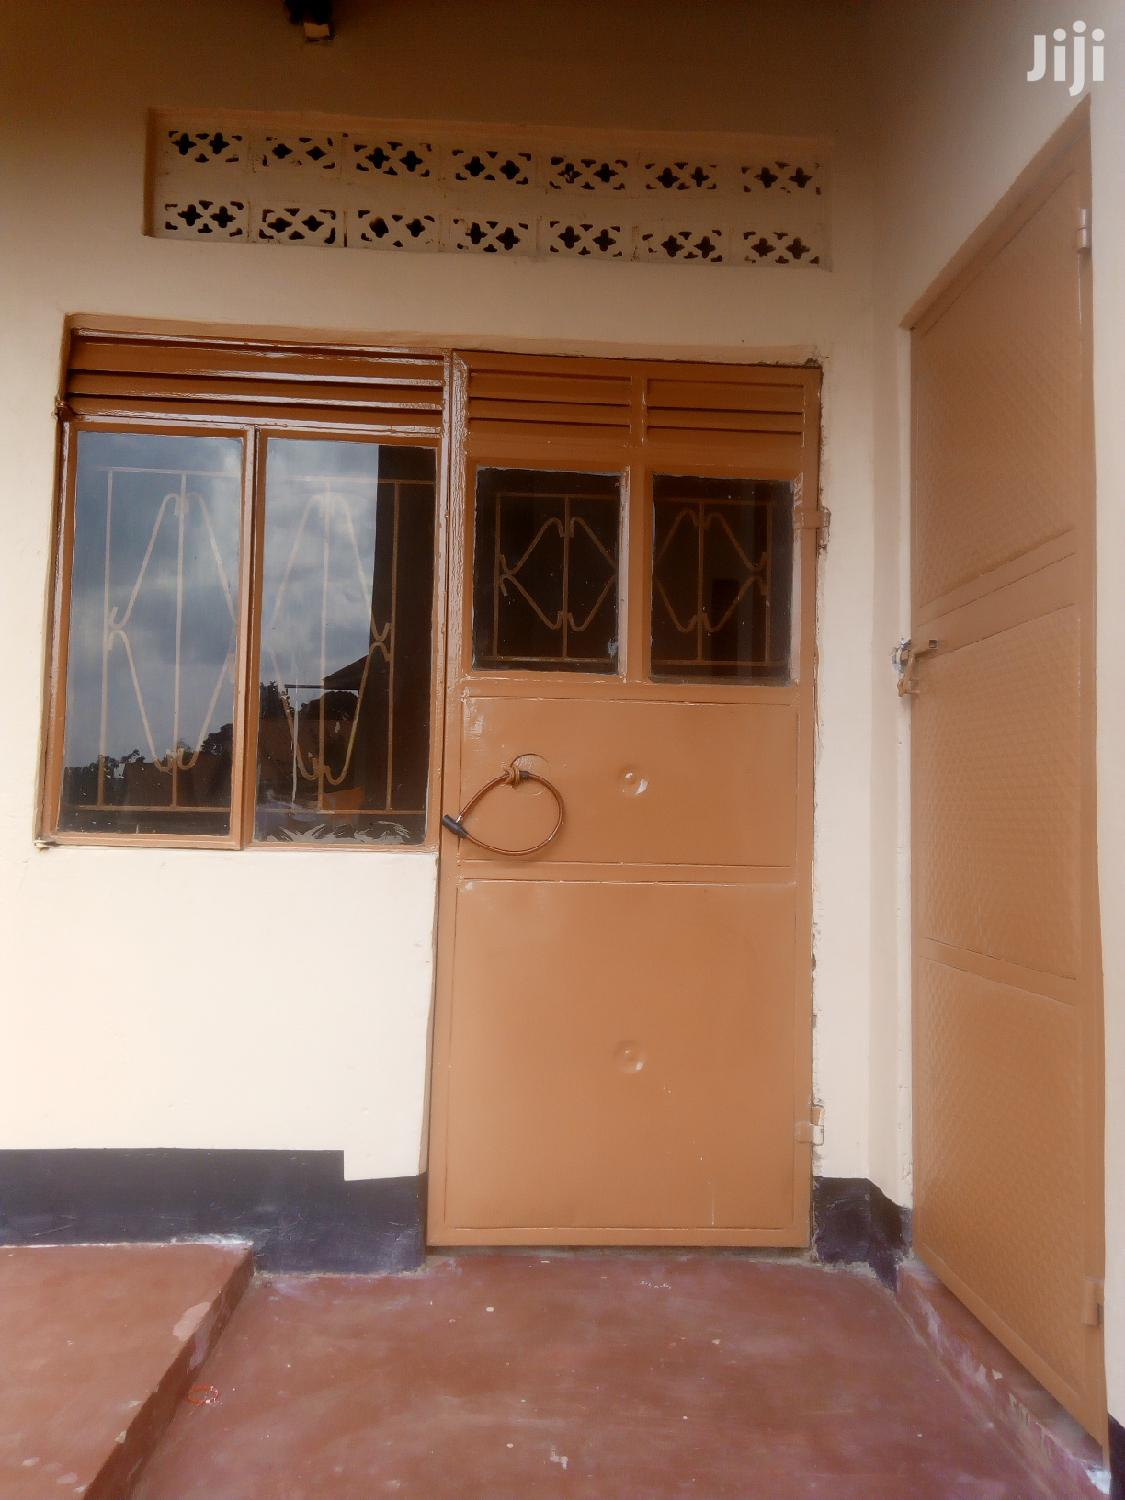 Archive: Brand New Single Room House For Rent At Bweyogerere Kirinya